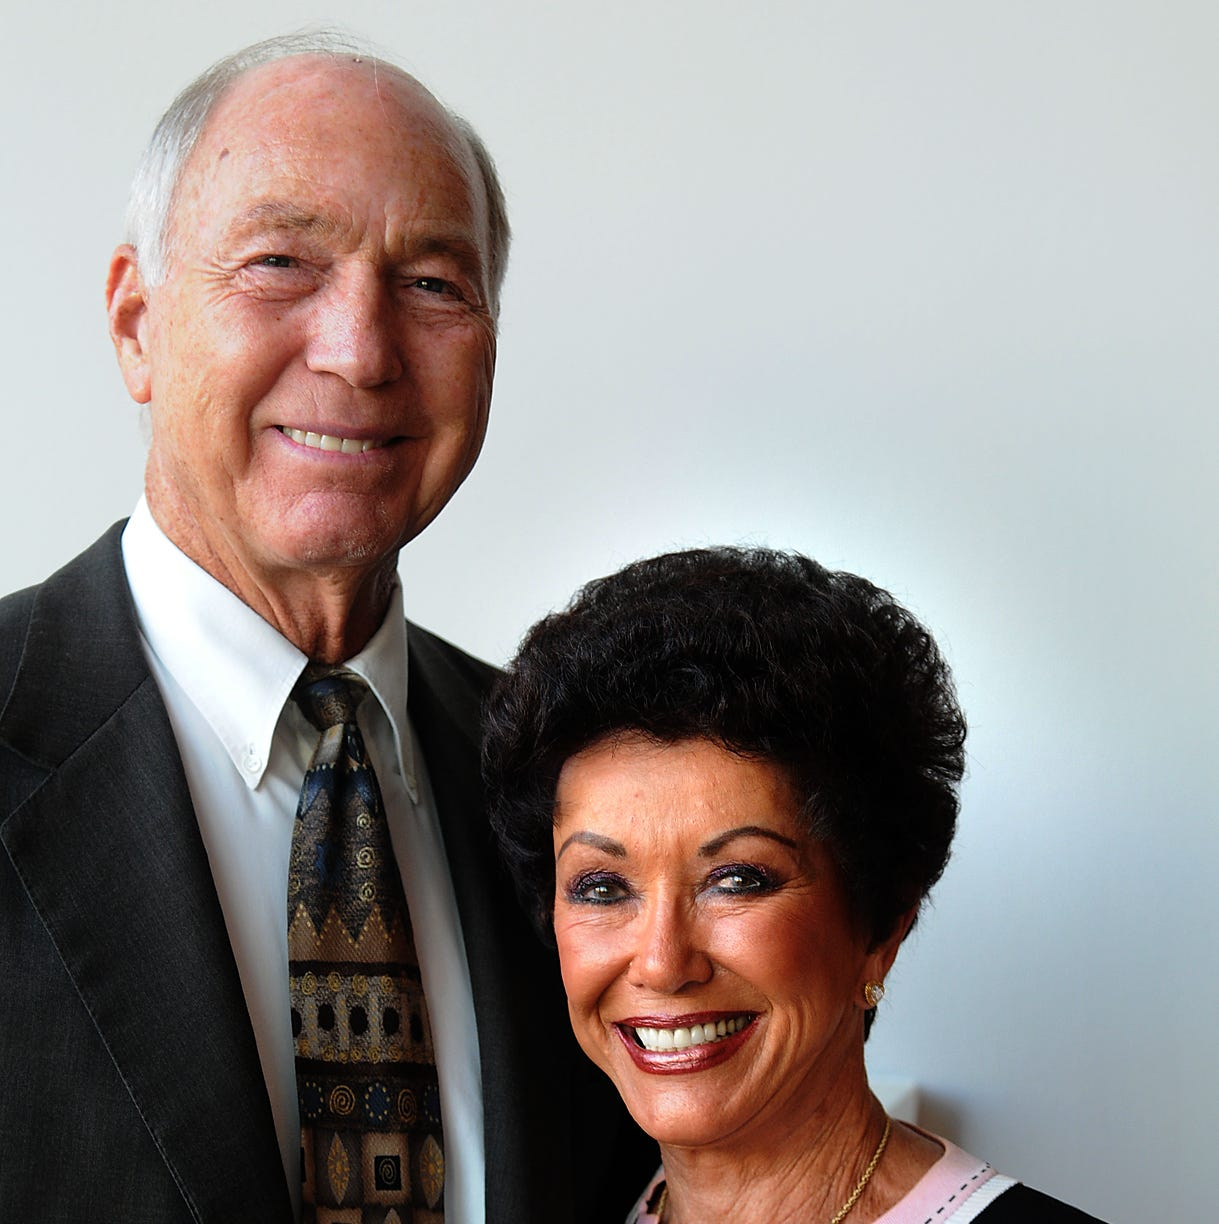 Bart Starr: Alabama years nearly derailed Hall of Famer's future